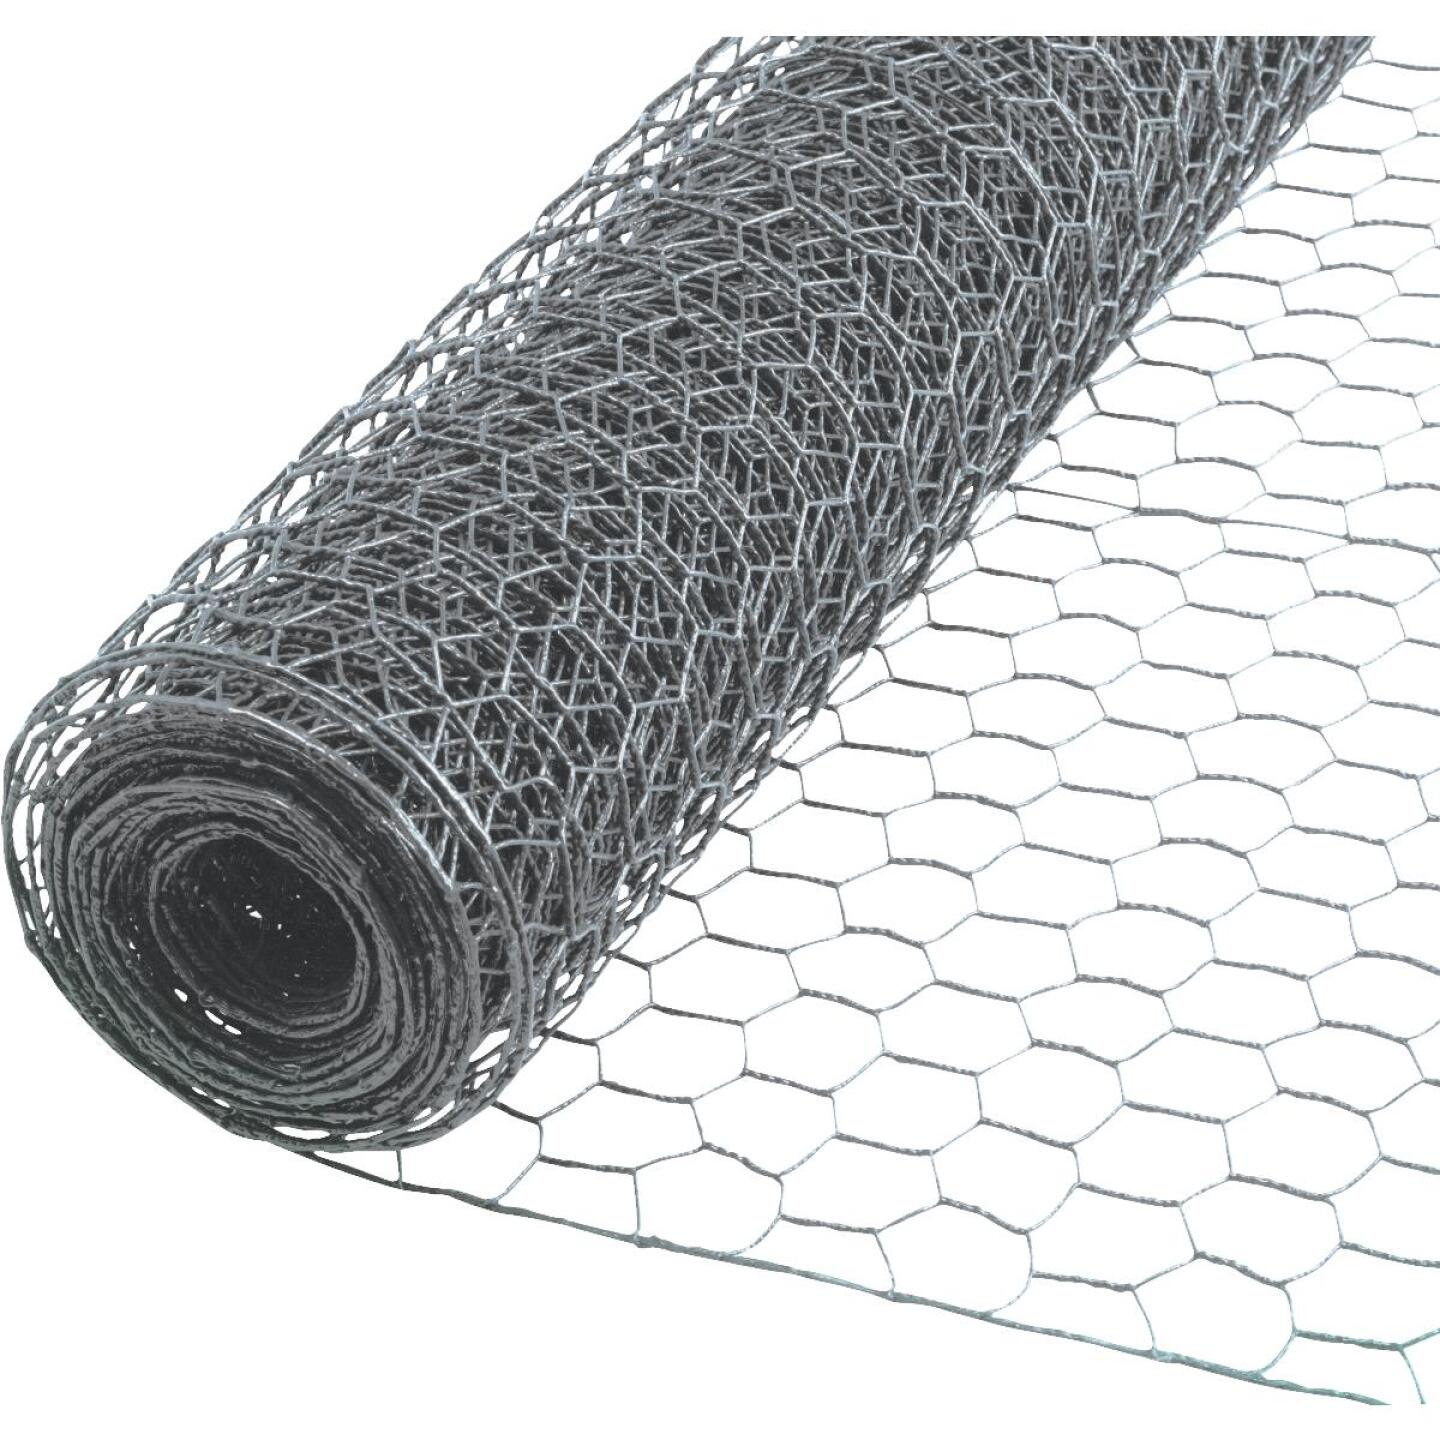 Do it 2 In. x 36 In. H. x 50 Ft. L. Hexagonal Wire Poultry Netting Image 1